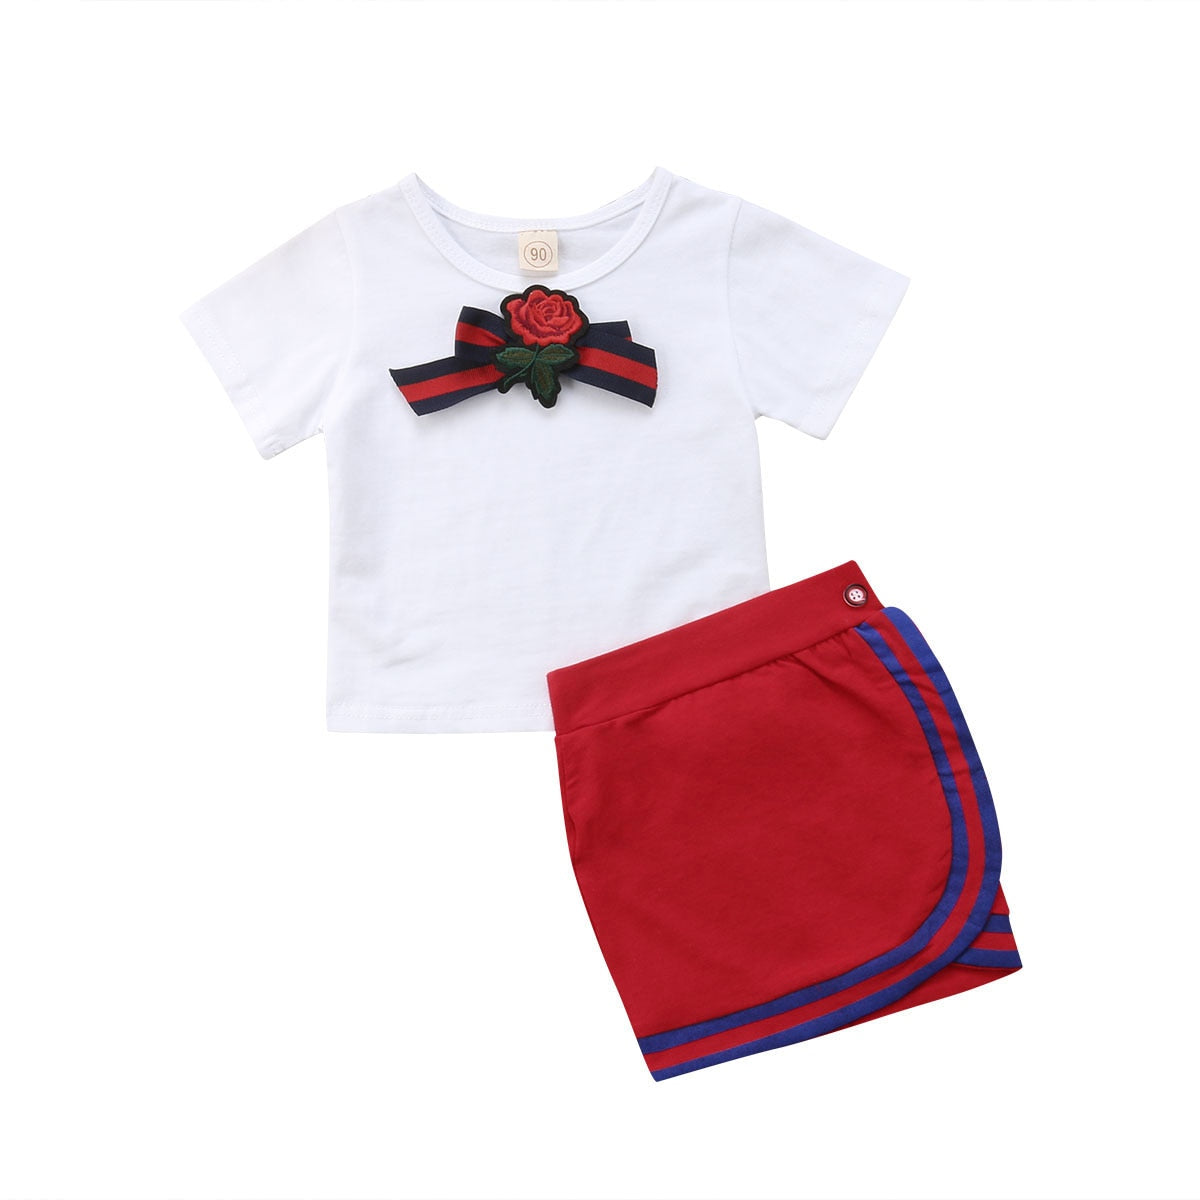 2pcs Newborn Toddler Kids Baby Girl Outfit Clothes Tops T-Shirt Skirt Dress Set